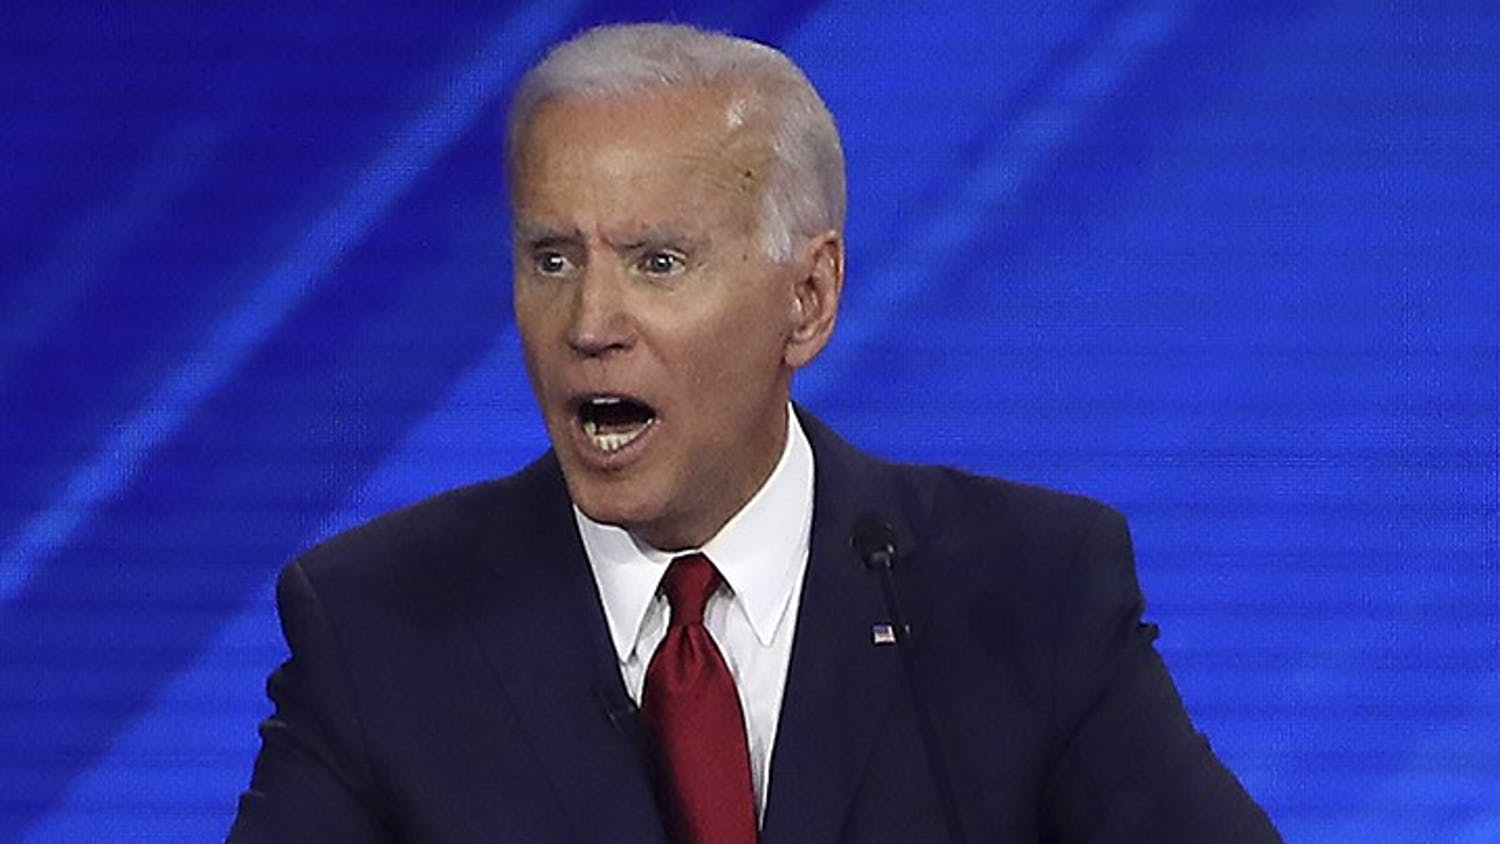 HOUSTON, TEXAS - SEPTEMBER 12: Democratic presidential candidate former Vice President Joe Biden speaks during the Democratic Presidential Debate at Texas Southern University's Health and PE Center on September 12, 2019 in Houston, Texas. Ten Democratic presidential hopefuls were chosen from the larger field of candidates to participate in the debate hosted by ABC News in partnership with Univision. (Win McNamee/Getty Images/TNS)